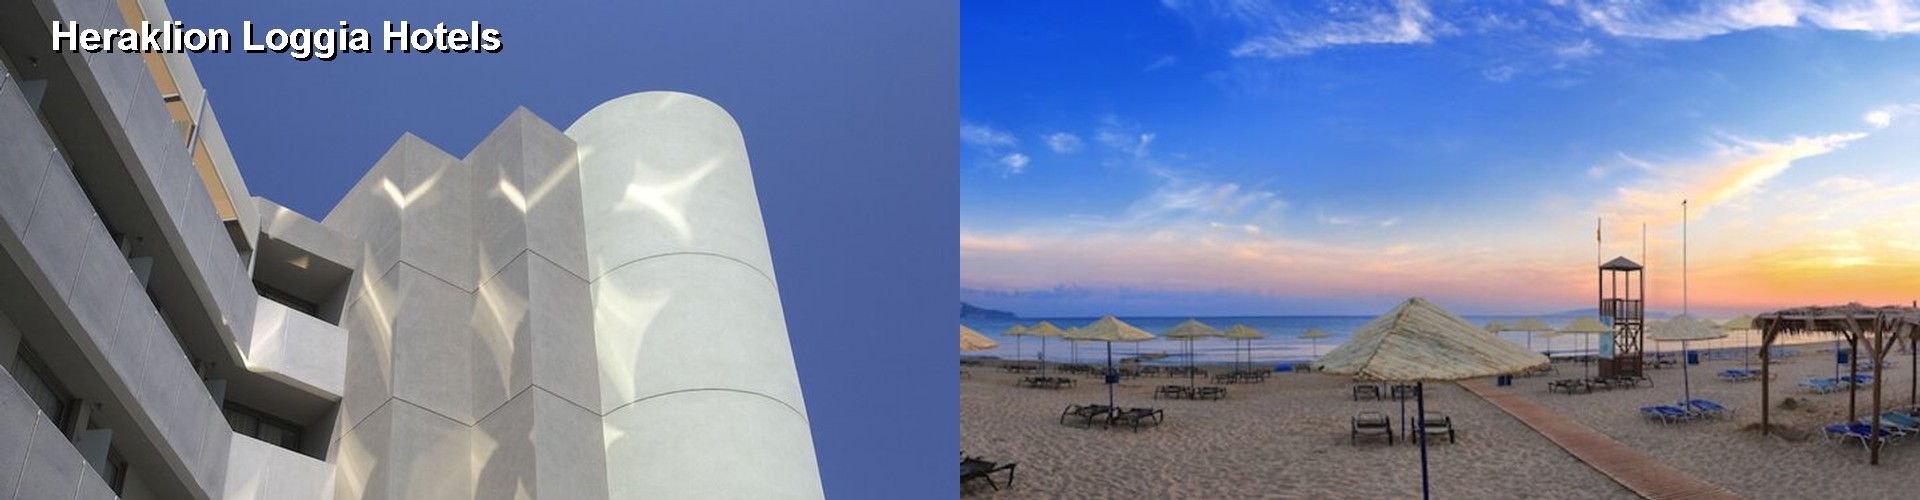 5 Best Hotels near Heraklion Loggia